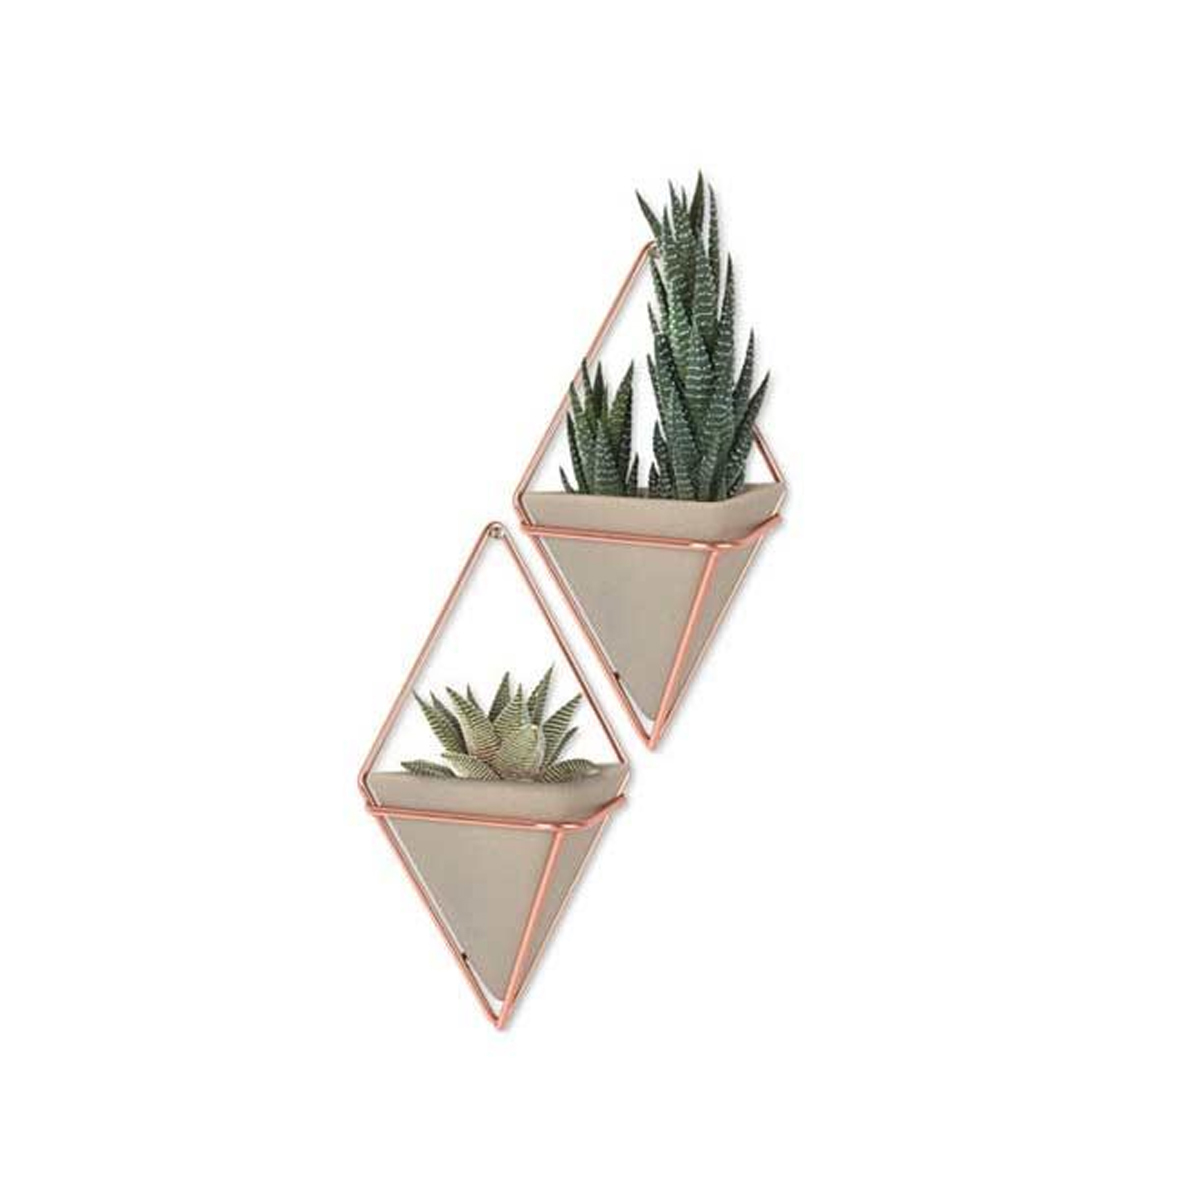 Set of geometric copper vessels that can hold succulents or small trinkets. photo